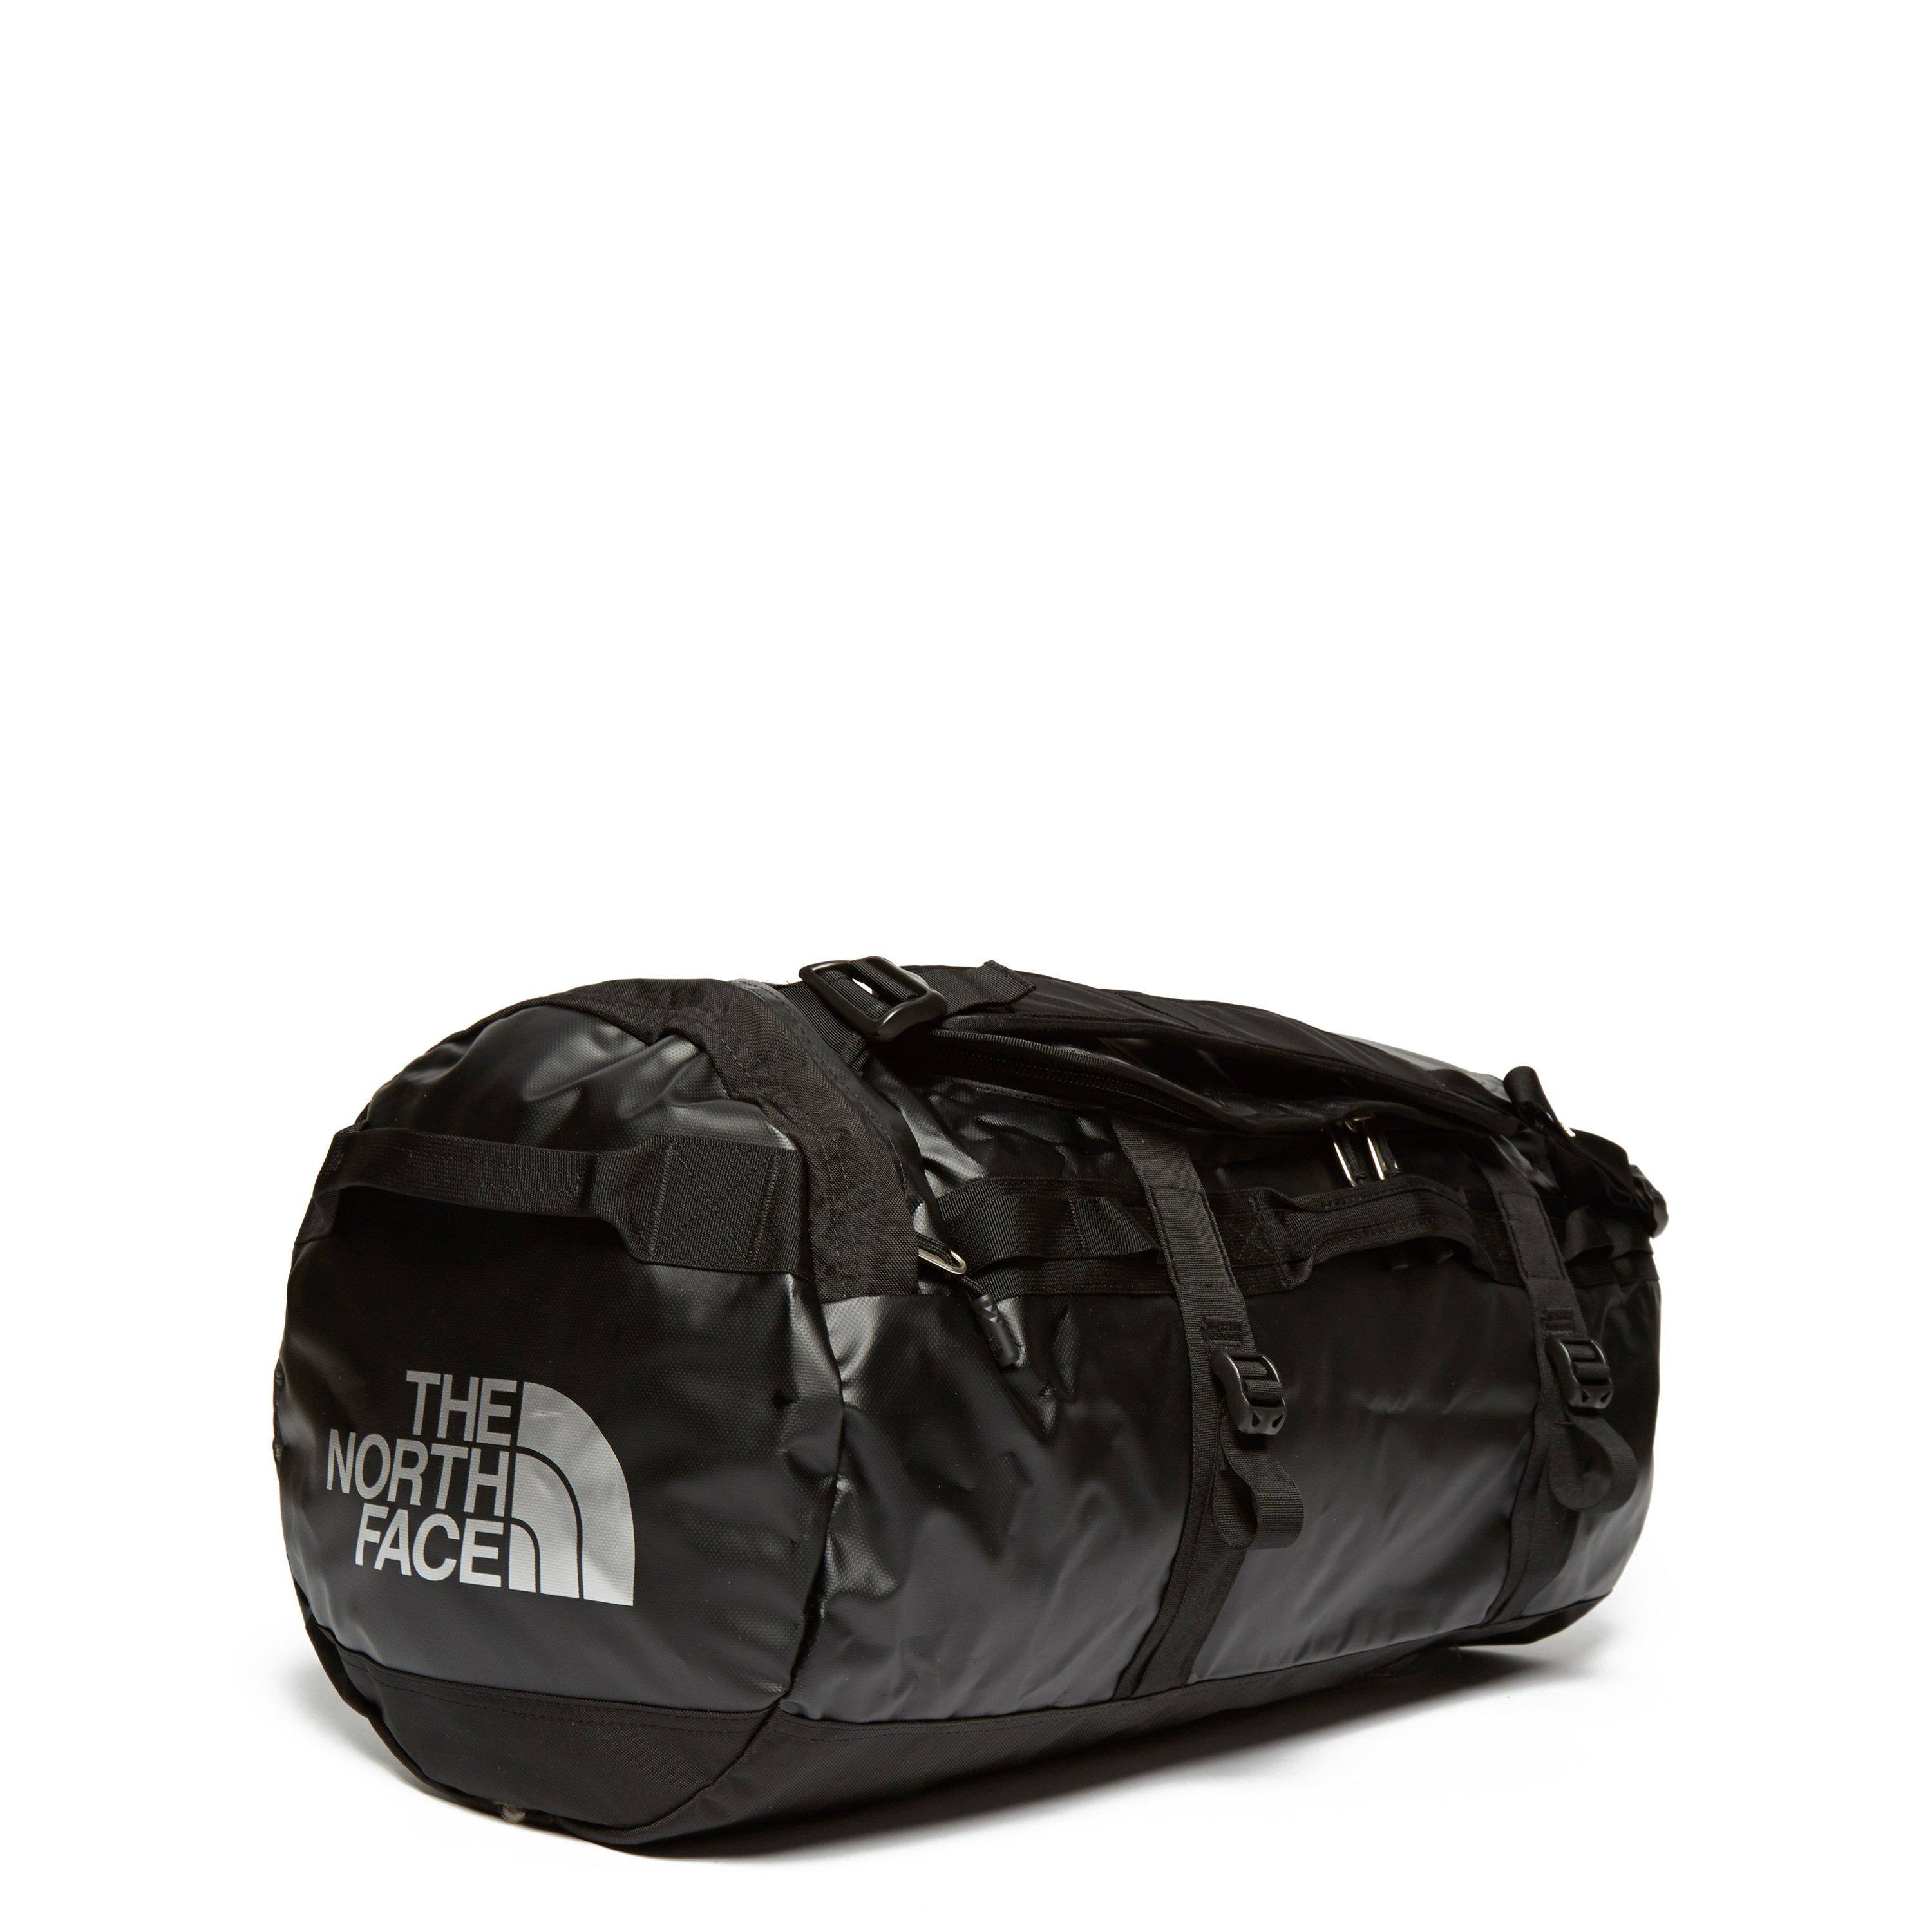 The North Face Basecamp Duffel Bag (Small) Black